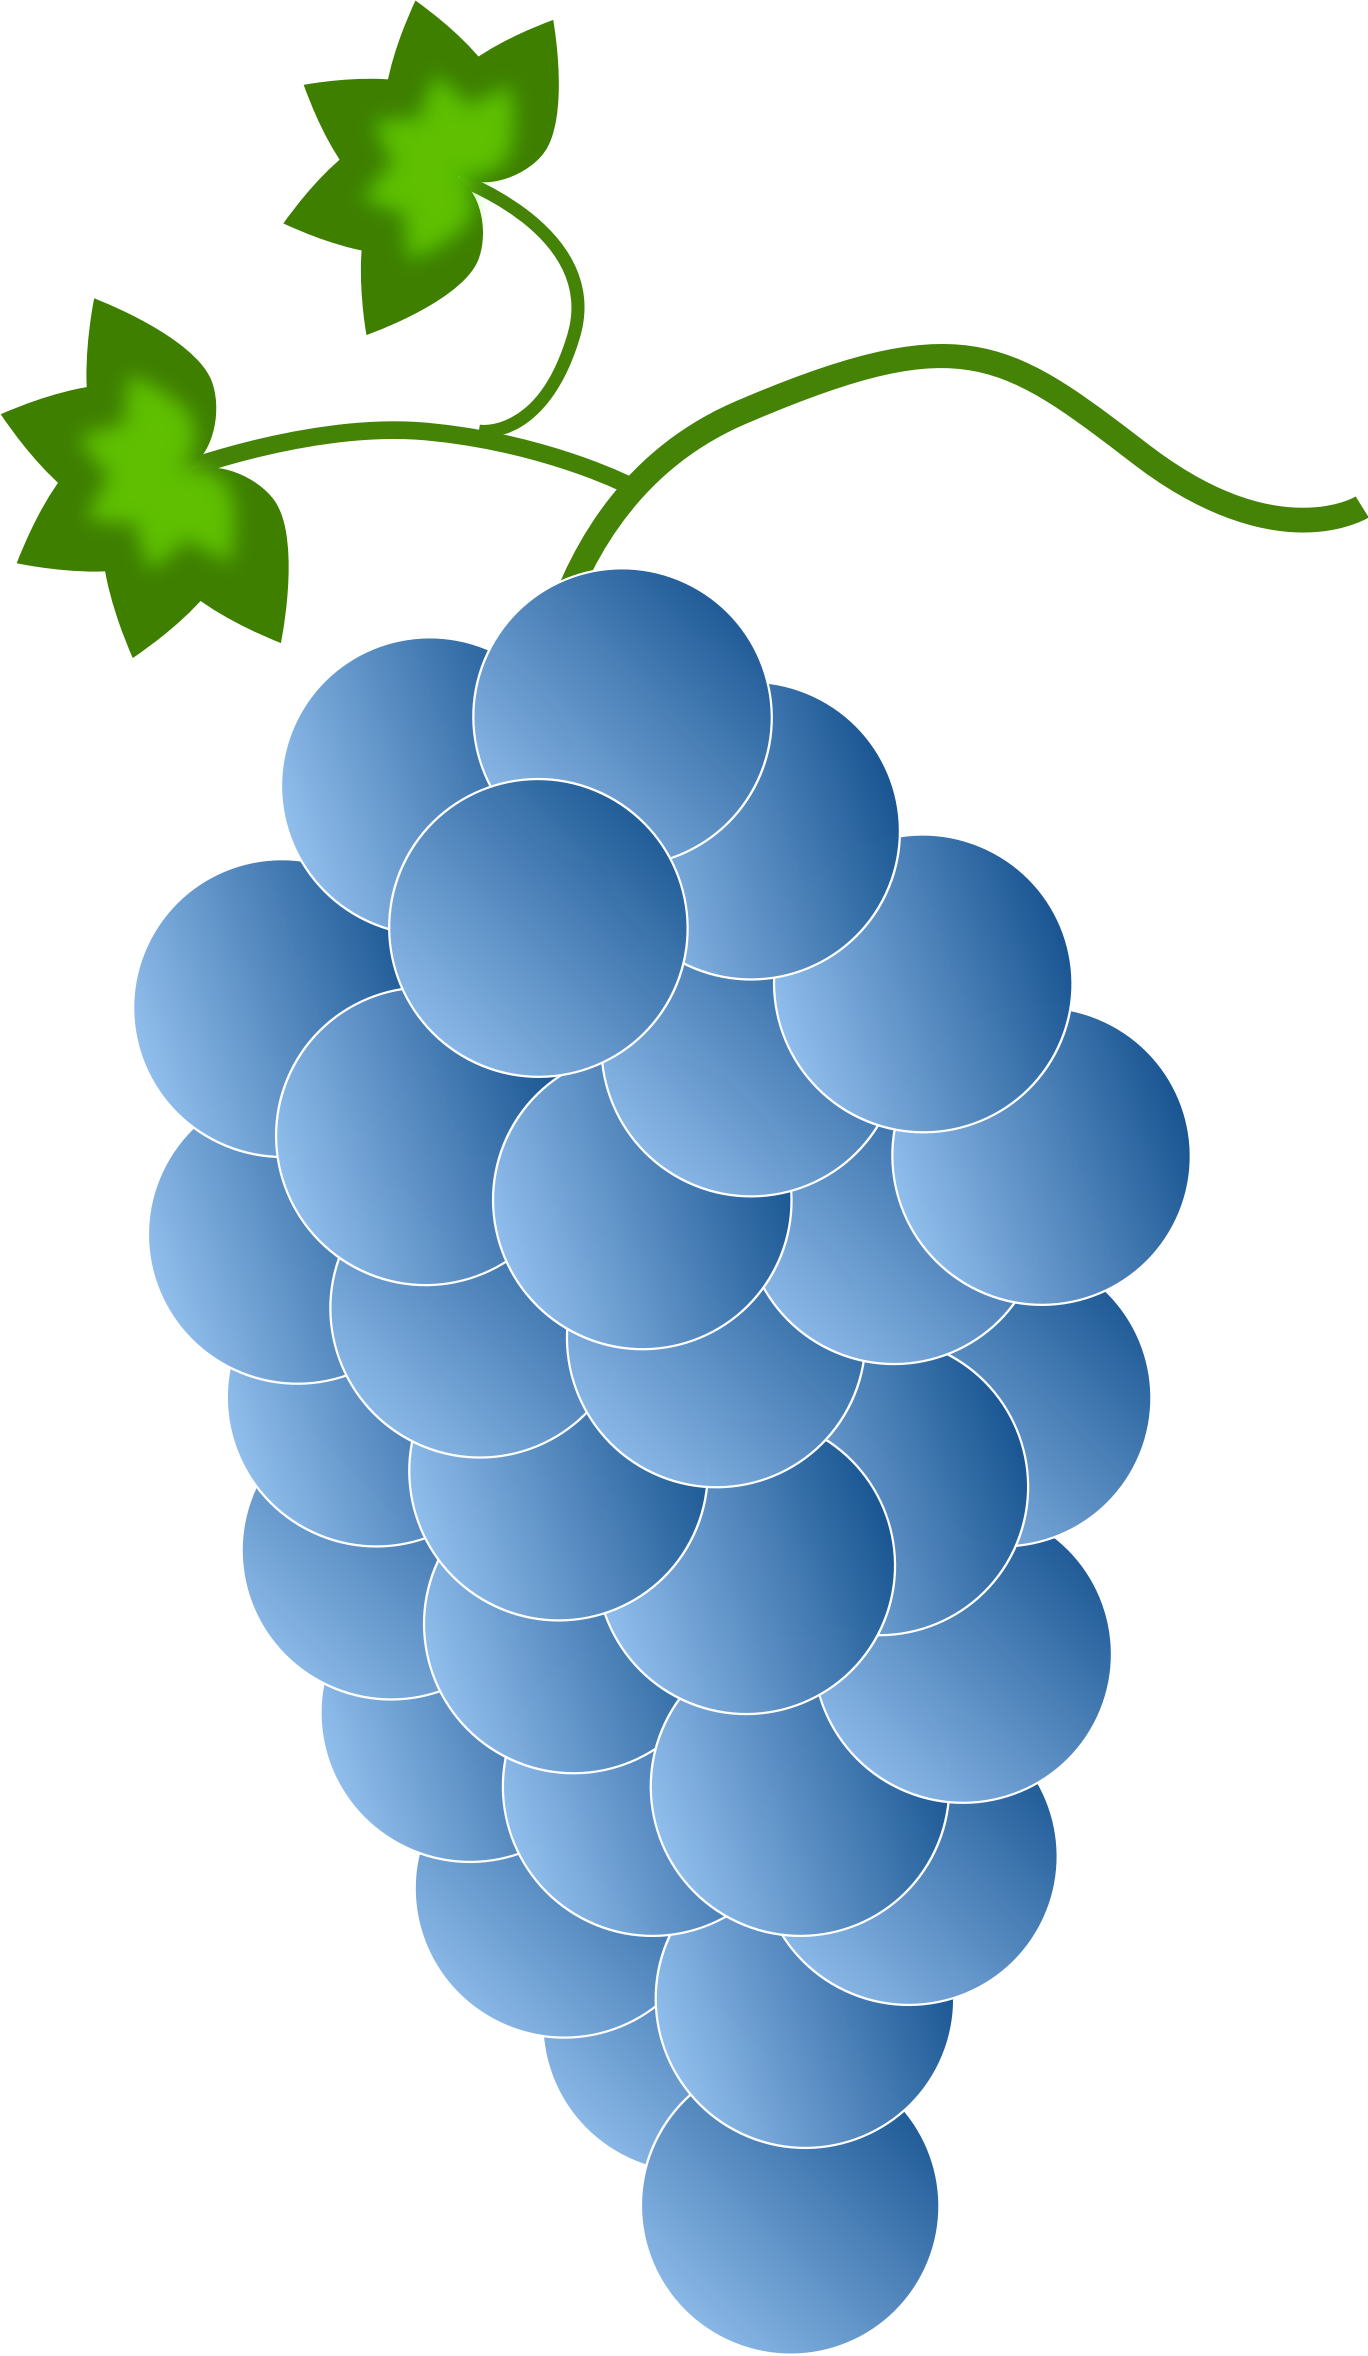 clip art black and white stock Big image png. Grapes clipart blue grape